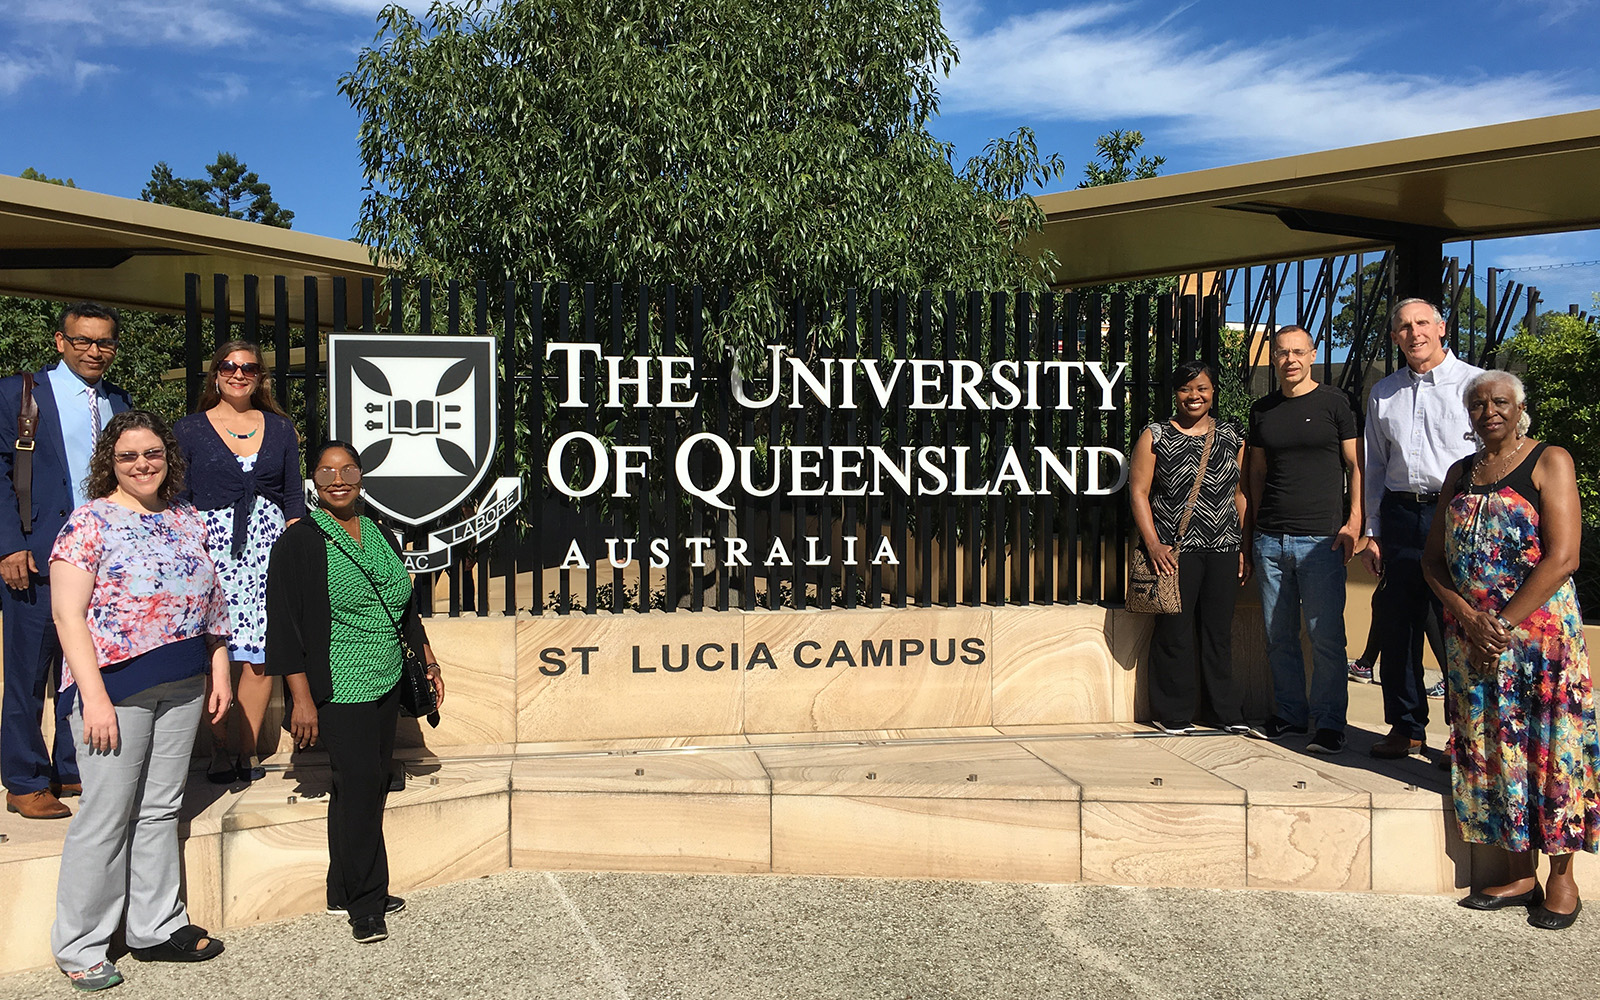 Participants in UConn CIBER's sustainable business program, at the University of Queensland St. Lucia Campus. (Michele Metcalf/UConn School of Business)